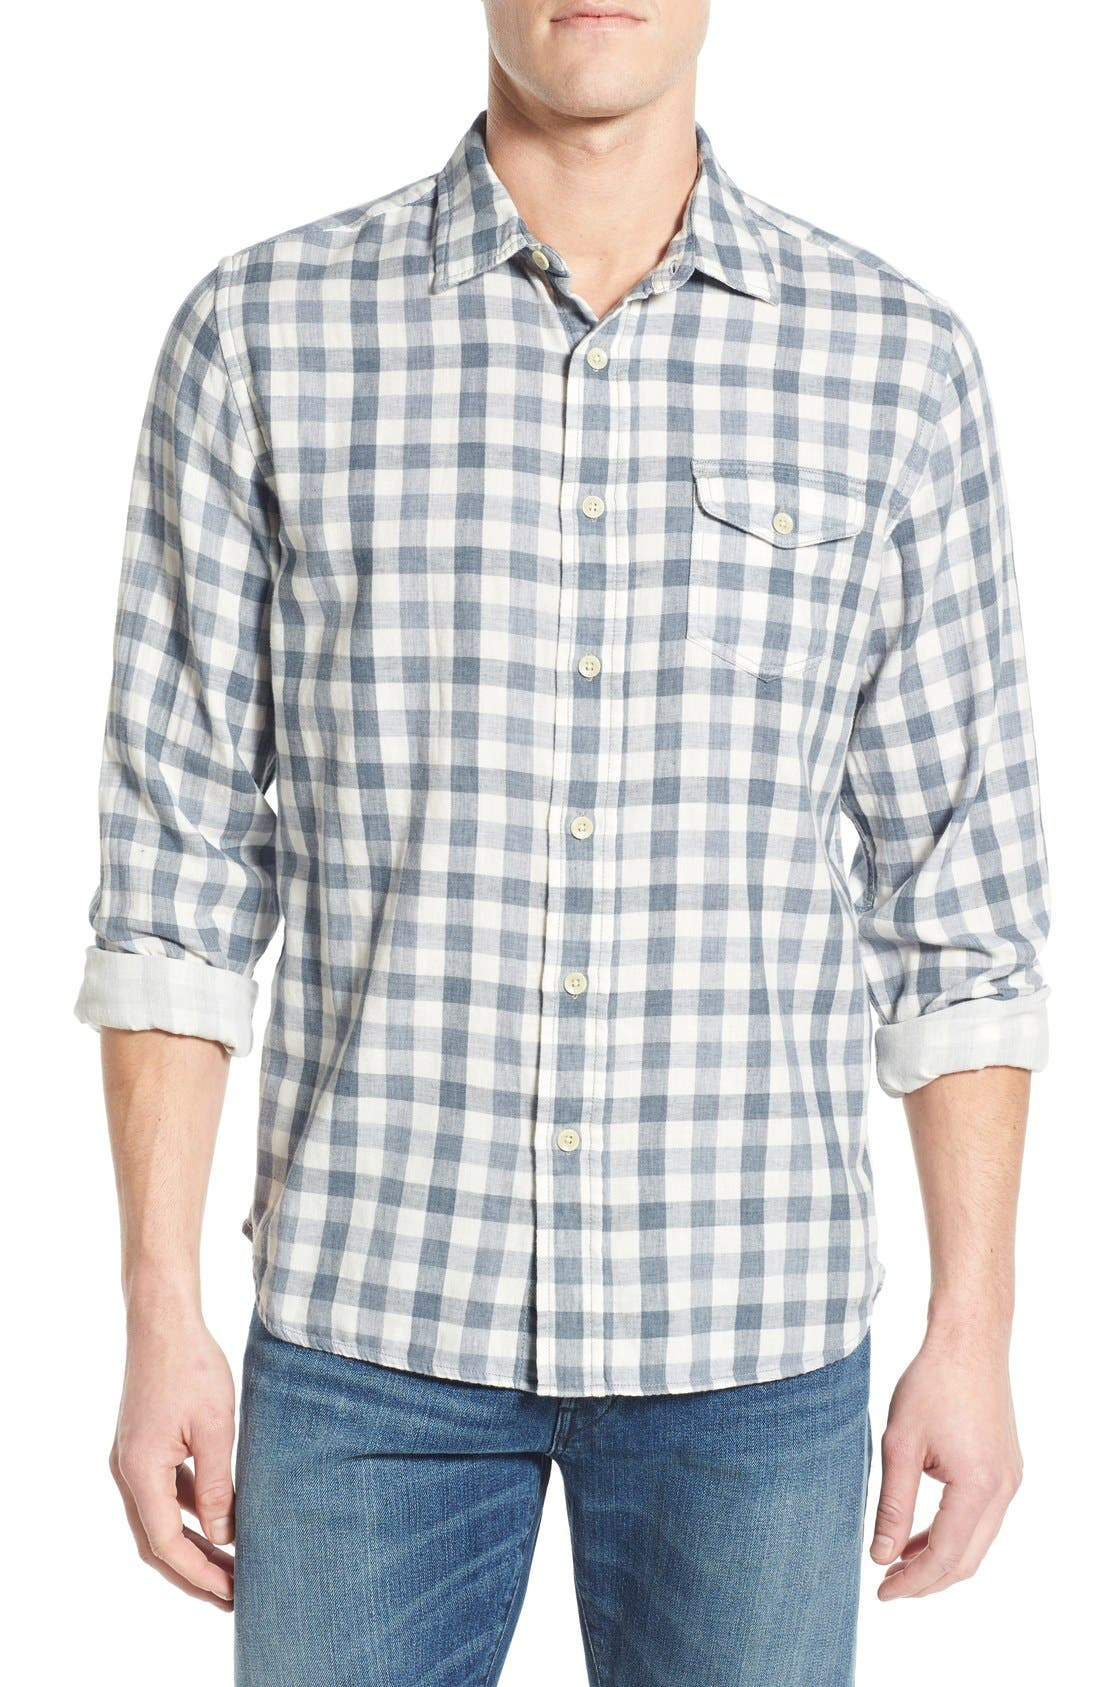 'Denby' Trim Fit Double Woven Sport Shirt,                         Main,                         color, Heather Blue/ Cream Gingham